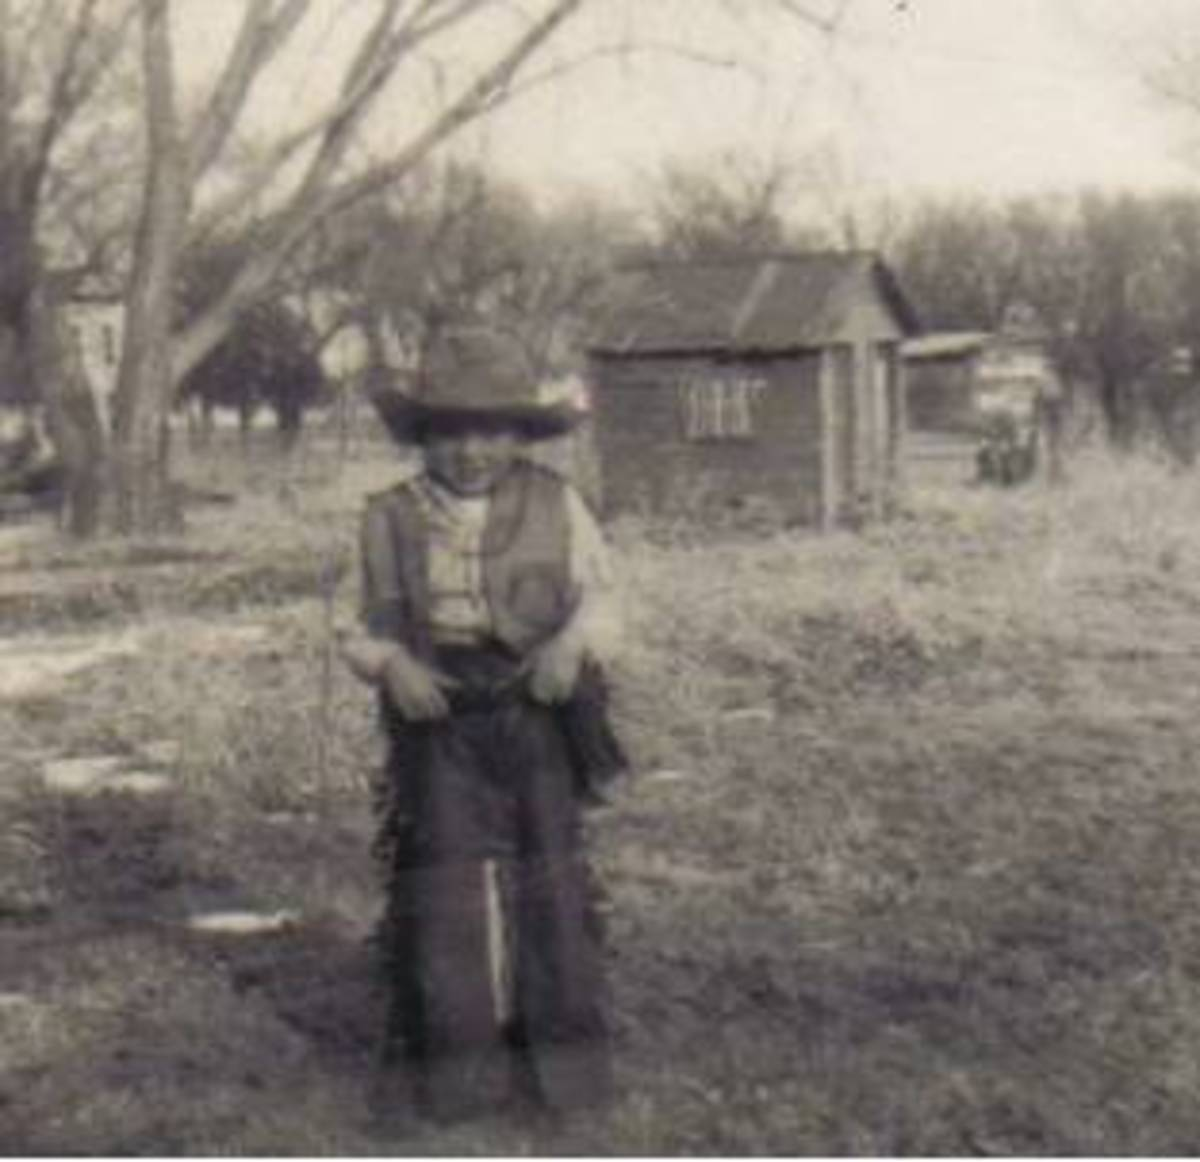 My brother in his full cowboy outfit. I wrote about the time he fell off a saddle that was on a wooden fence. He broke his arm.